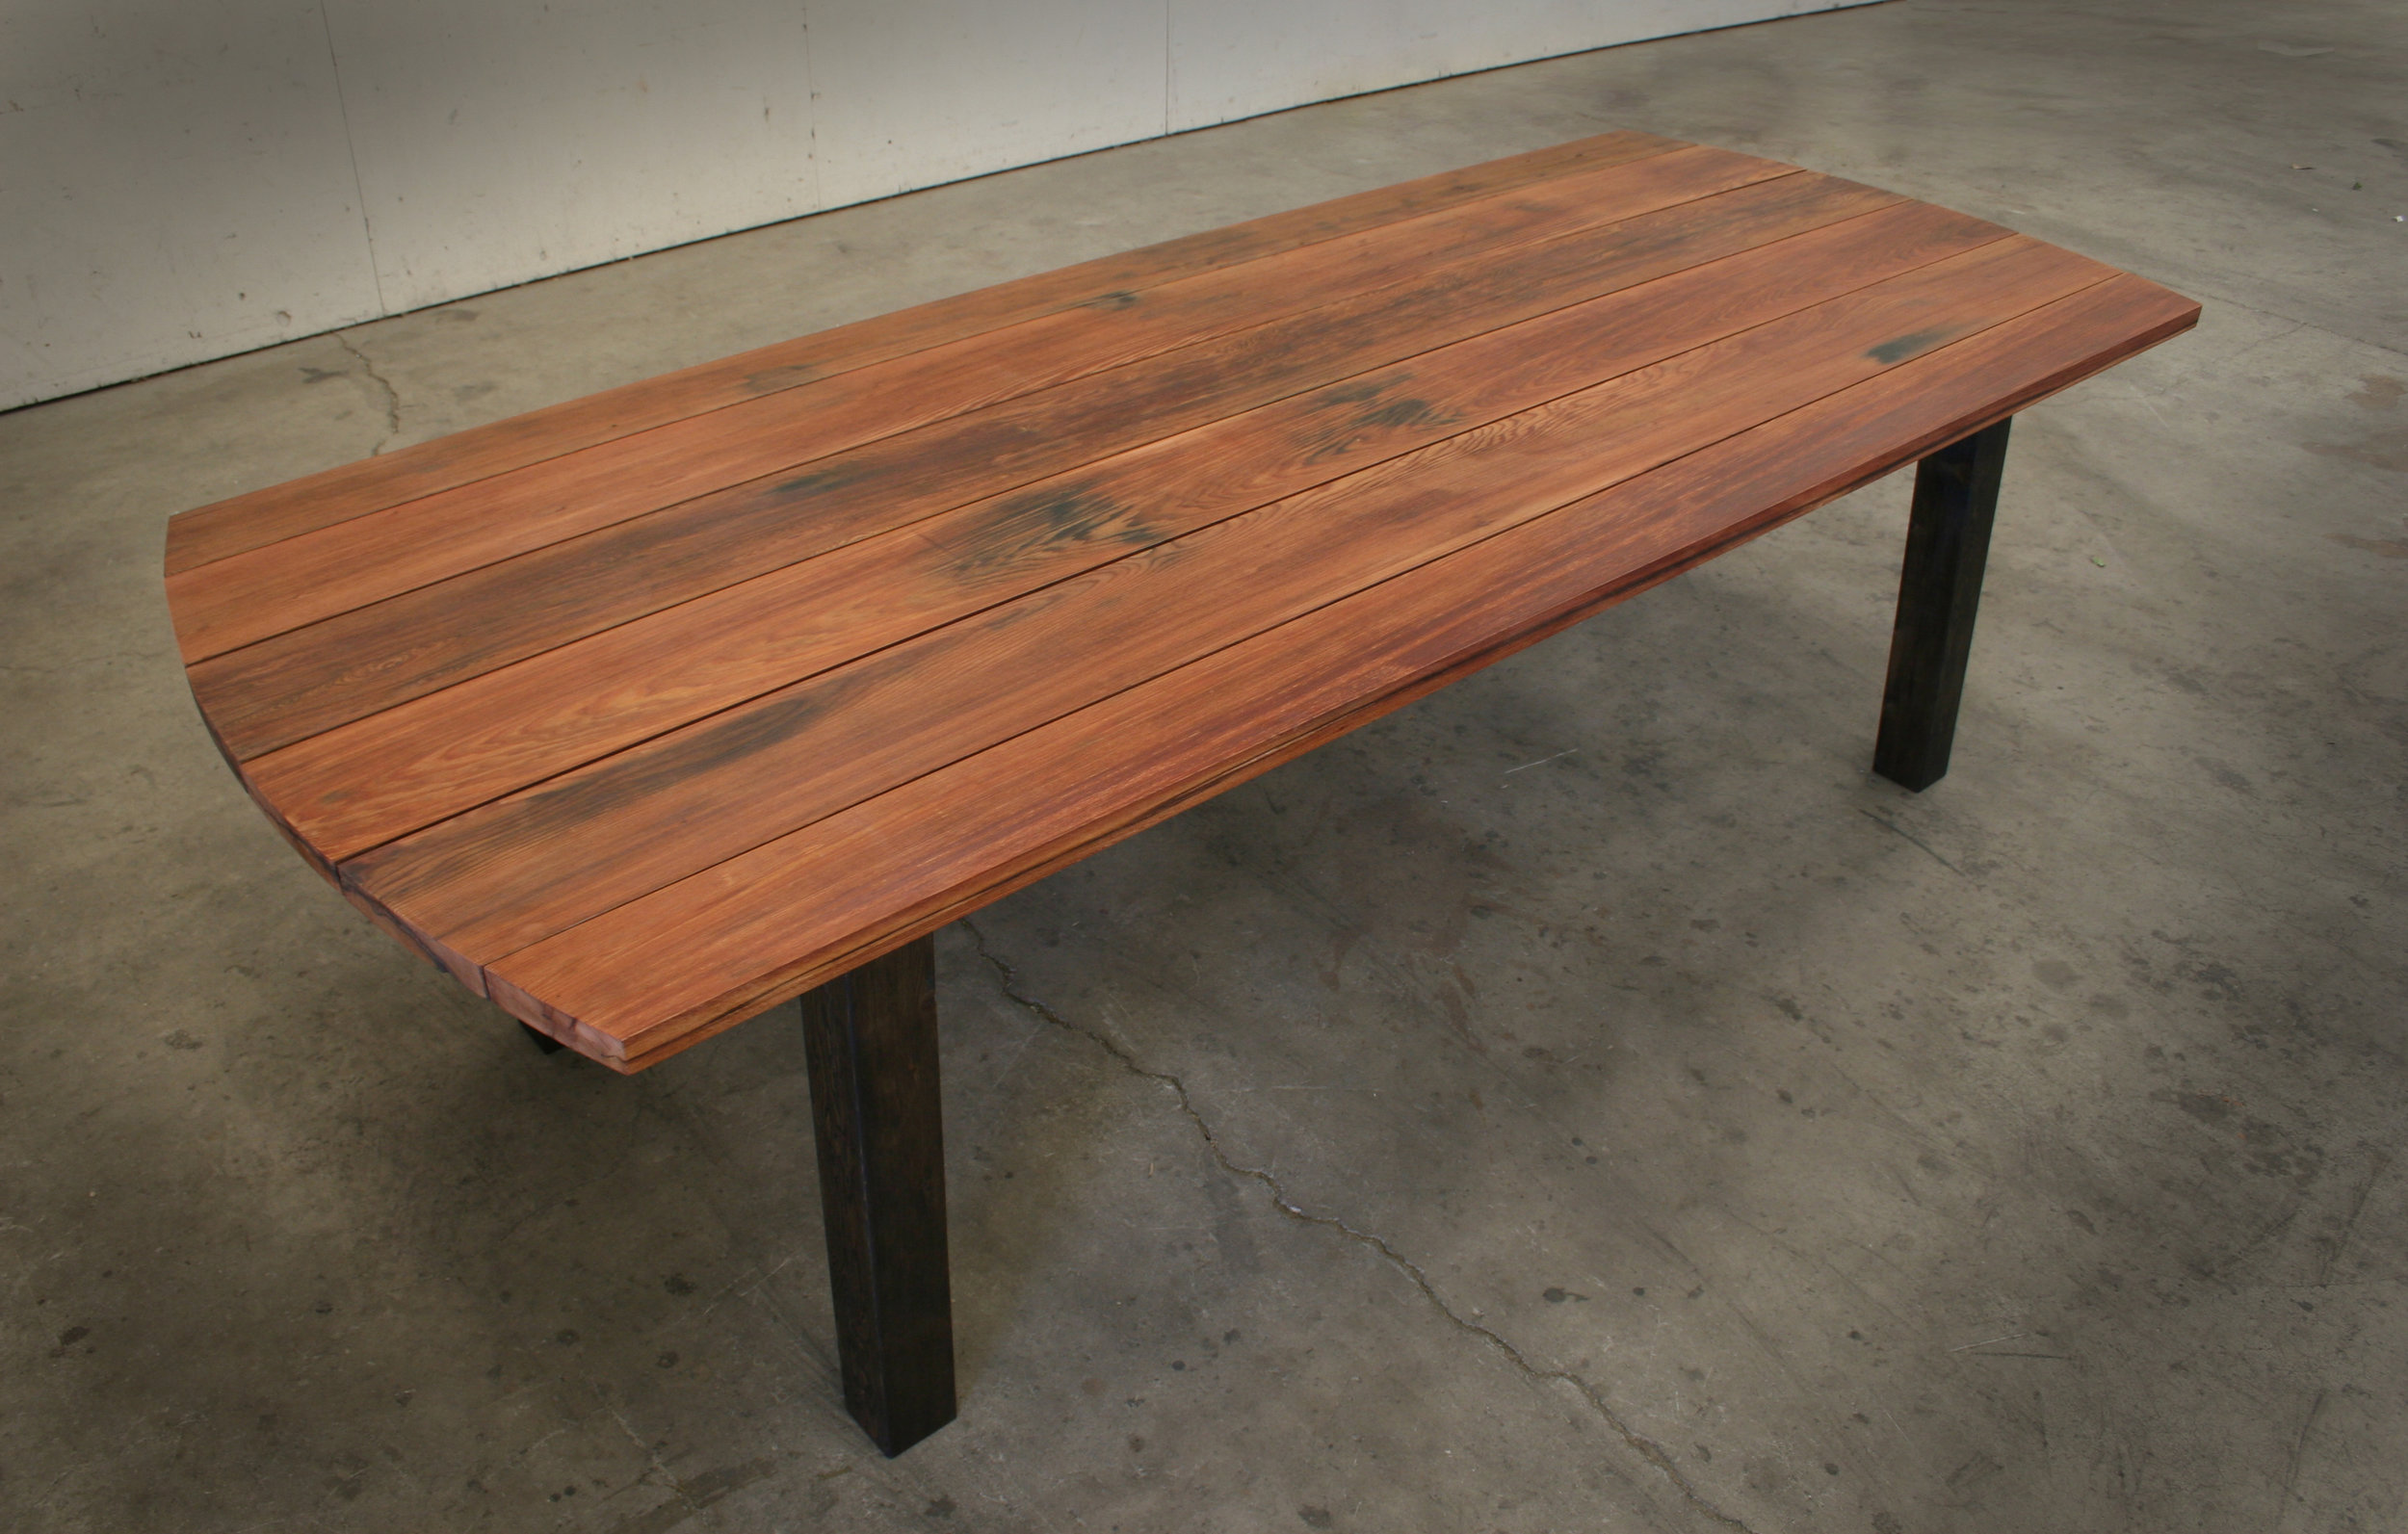 Reclaimed Redwood Table.  Top View.